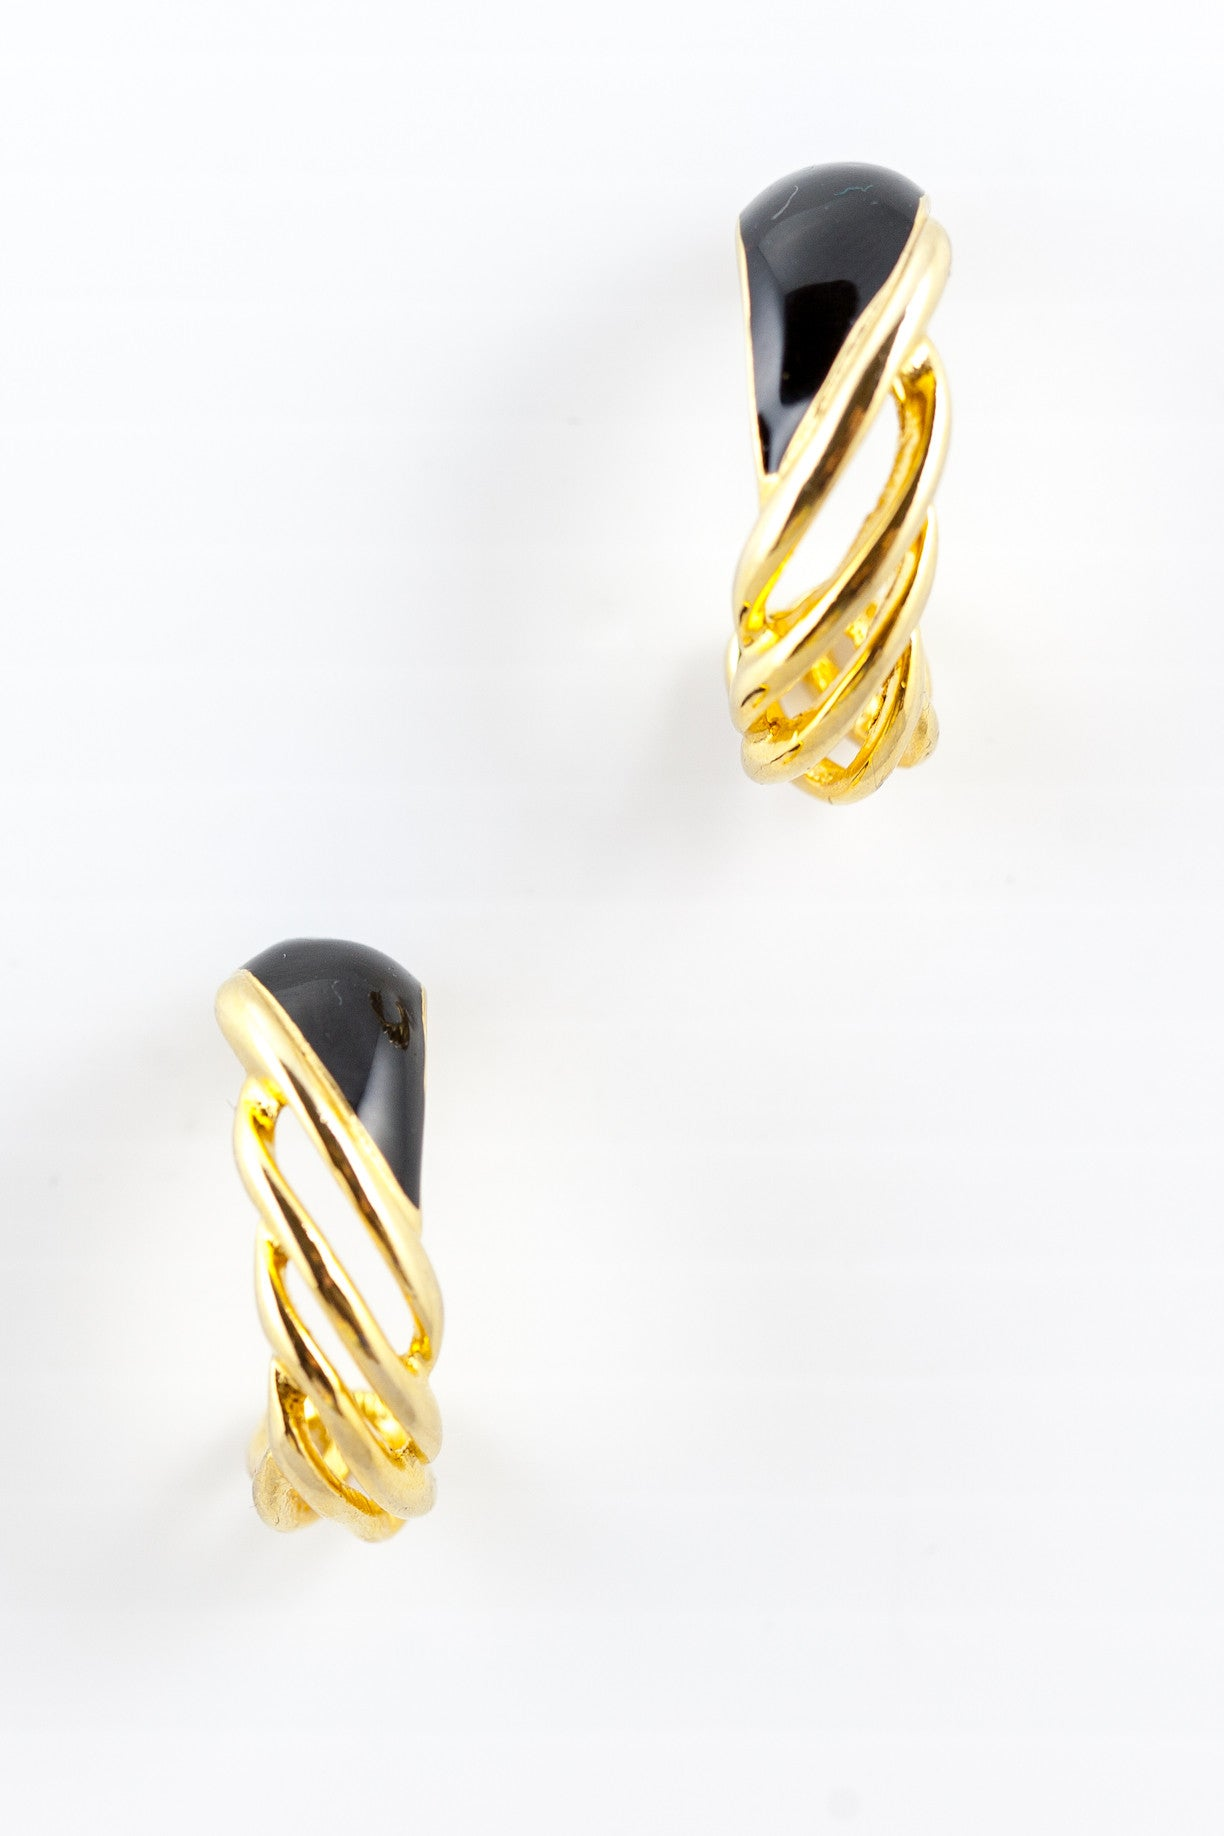 90's__Vintage__Edgy Twisted Half Hoop Earrings